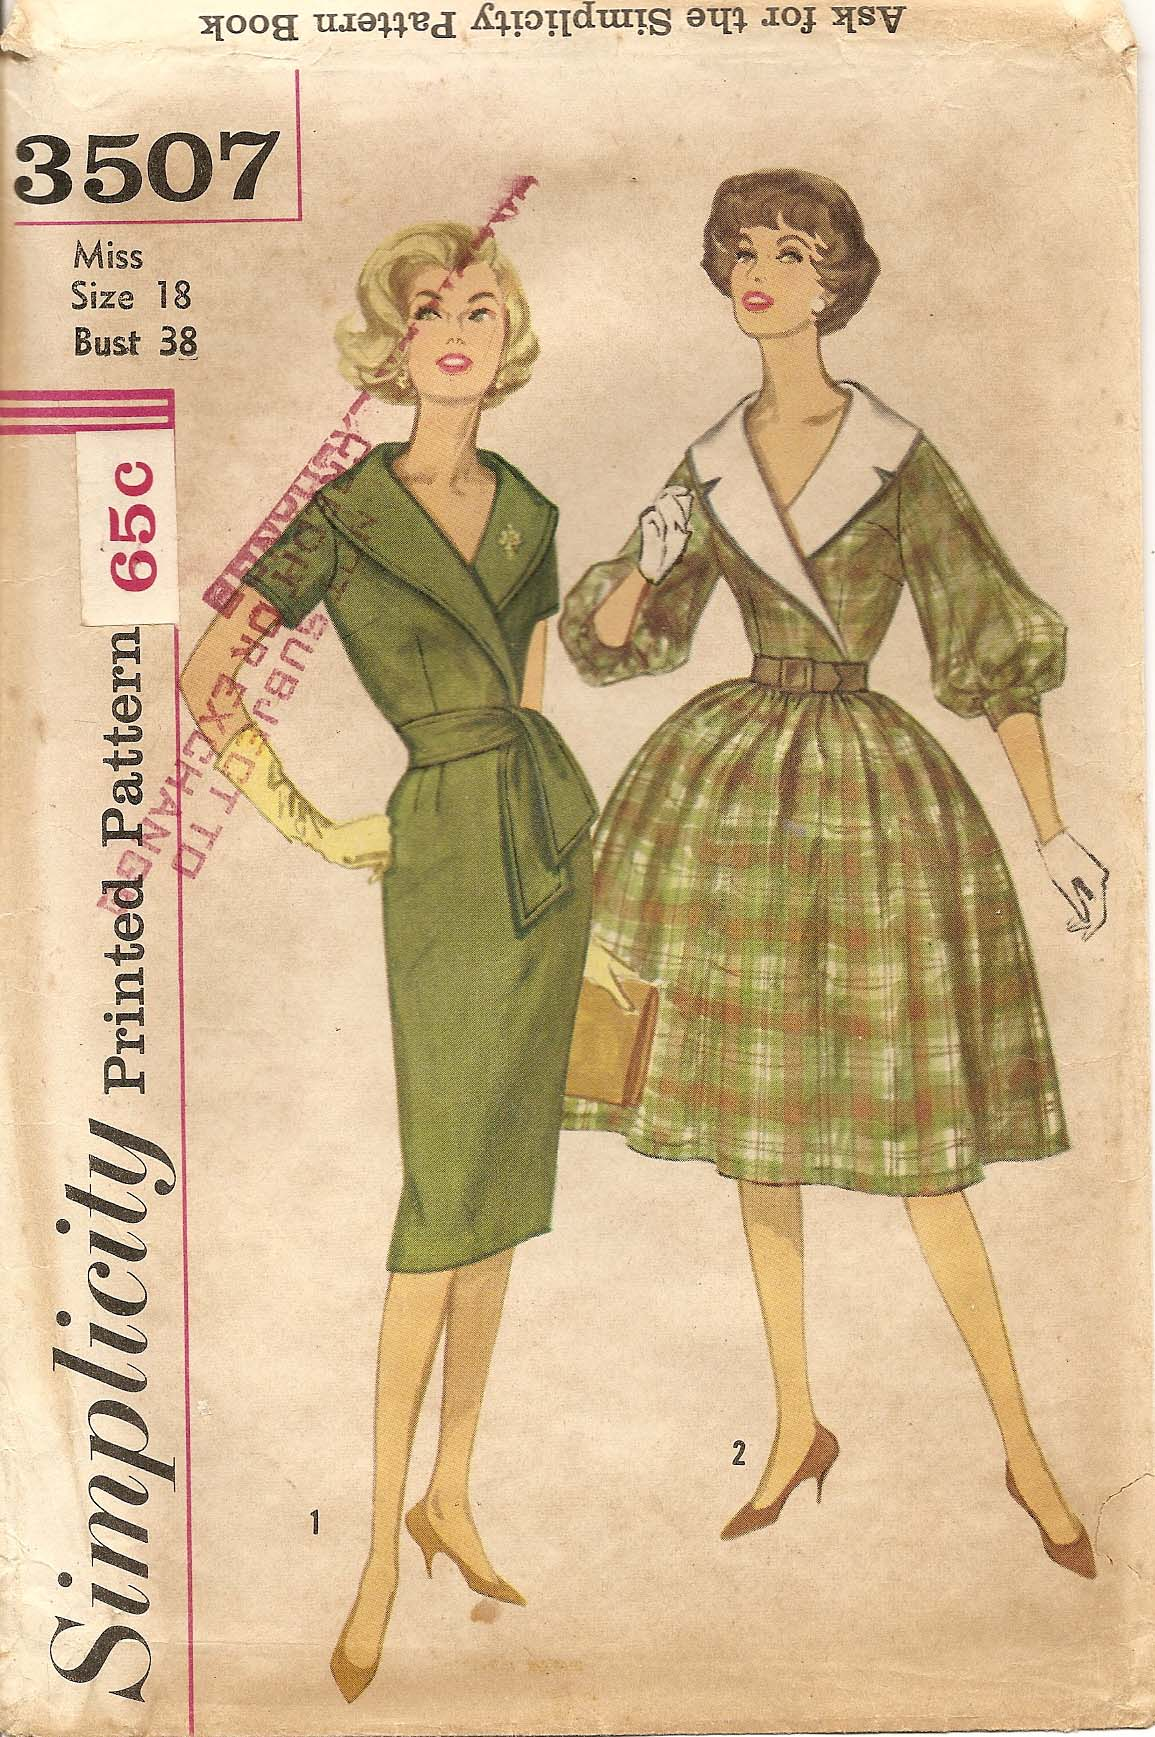 Simplicity 3507 a vintage sewing patterns fandom powered by wikia sim3507a jeuxipadfo Gallery